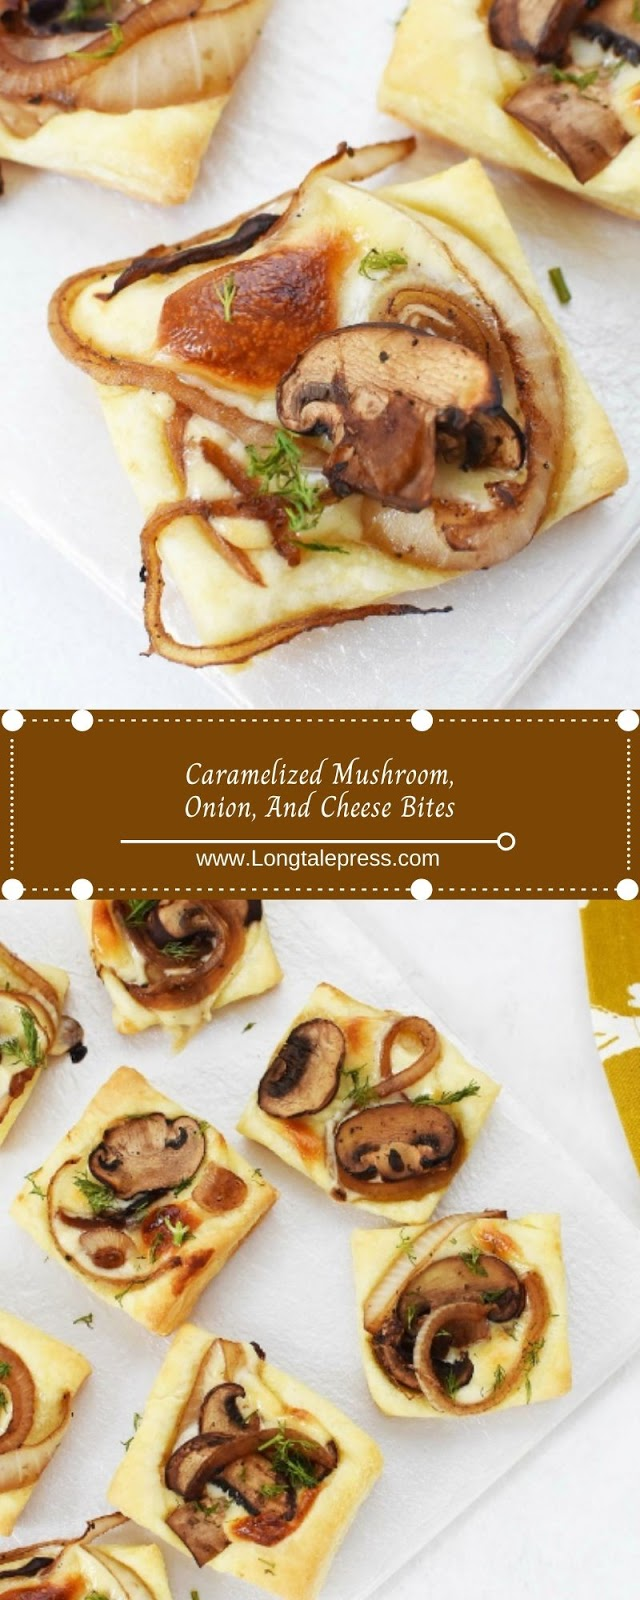 Caramelized Mushroom, Onion, And Cheese Bites